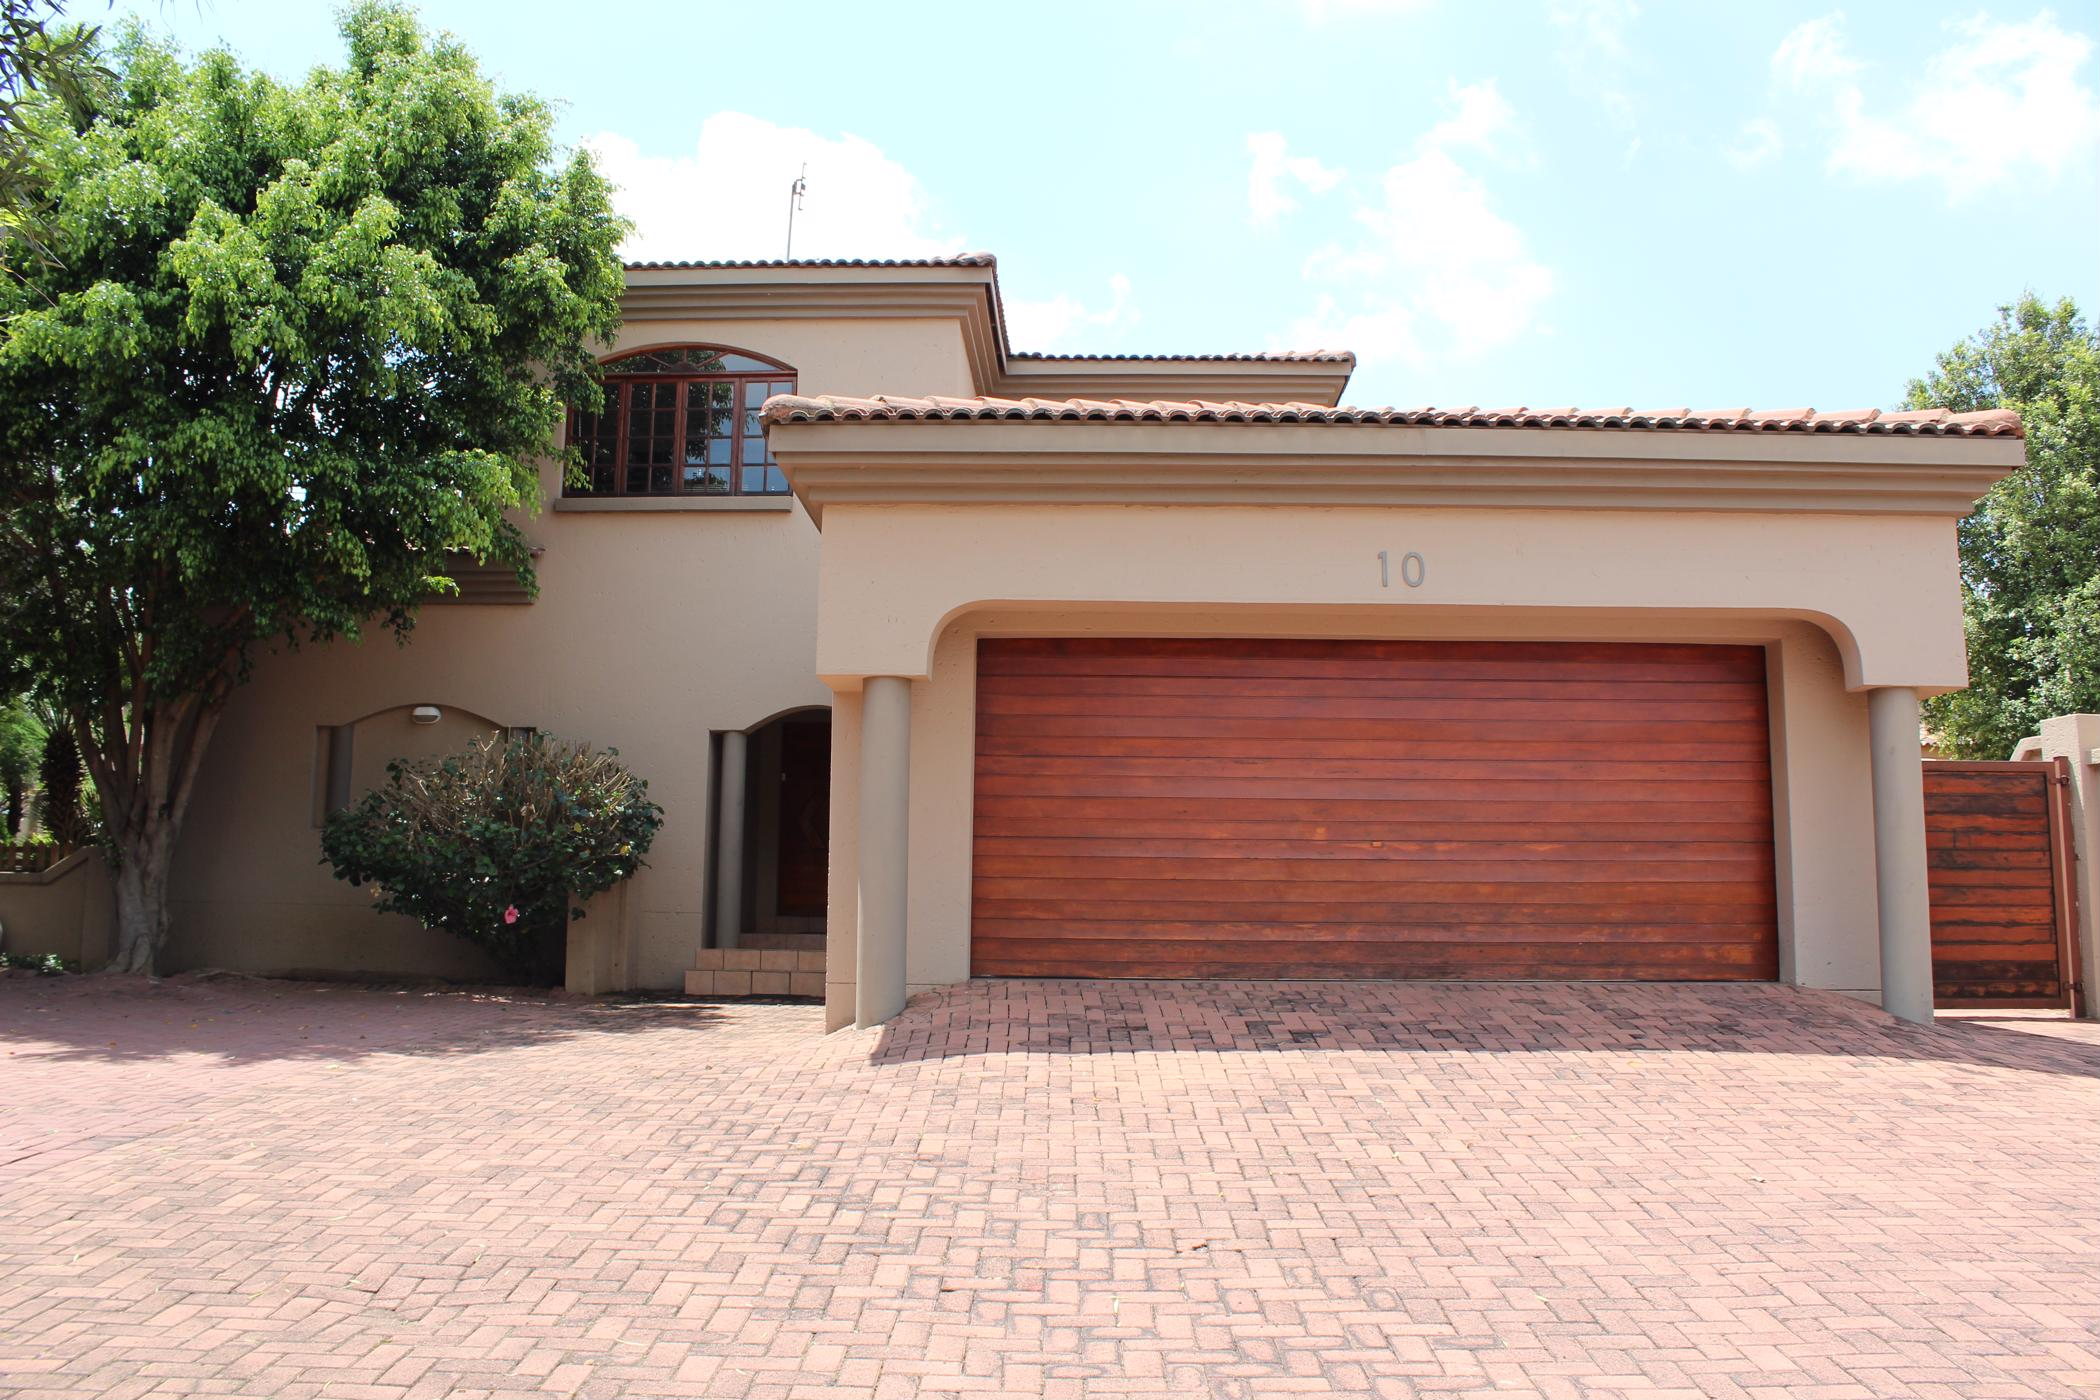 https://listing.pamgolding.co.za/images/properties/201811/401877/H/401877_H_11.jpg